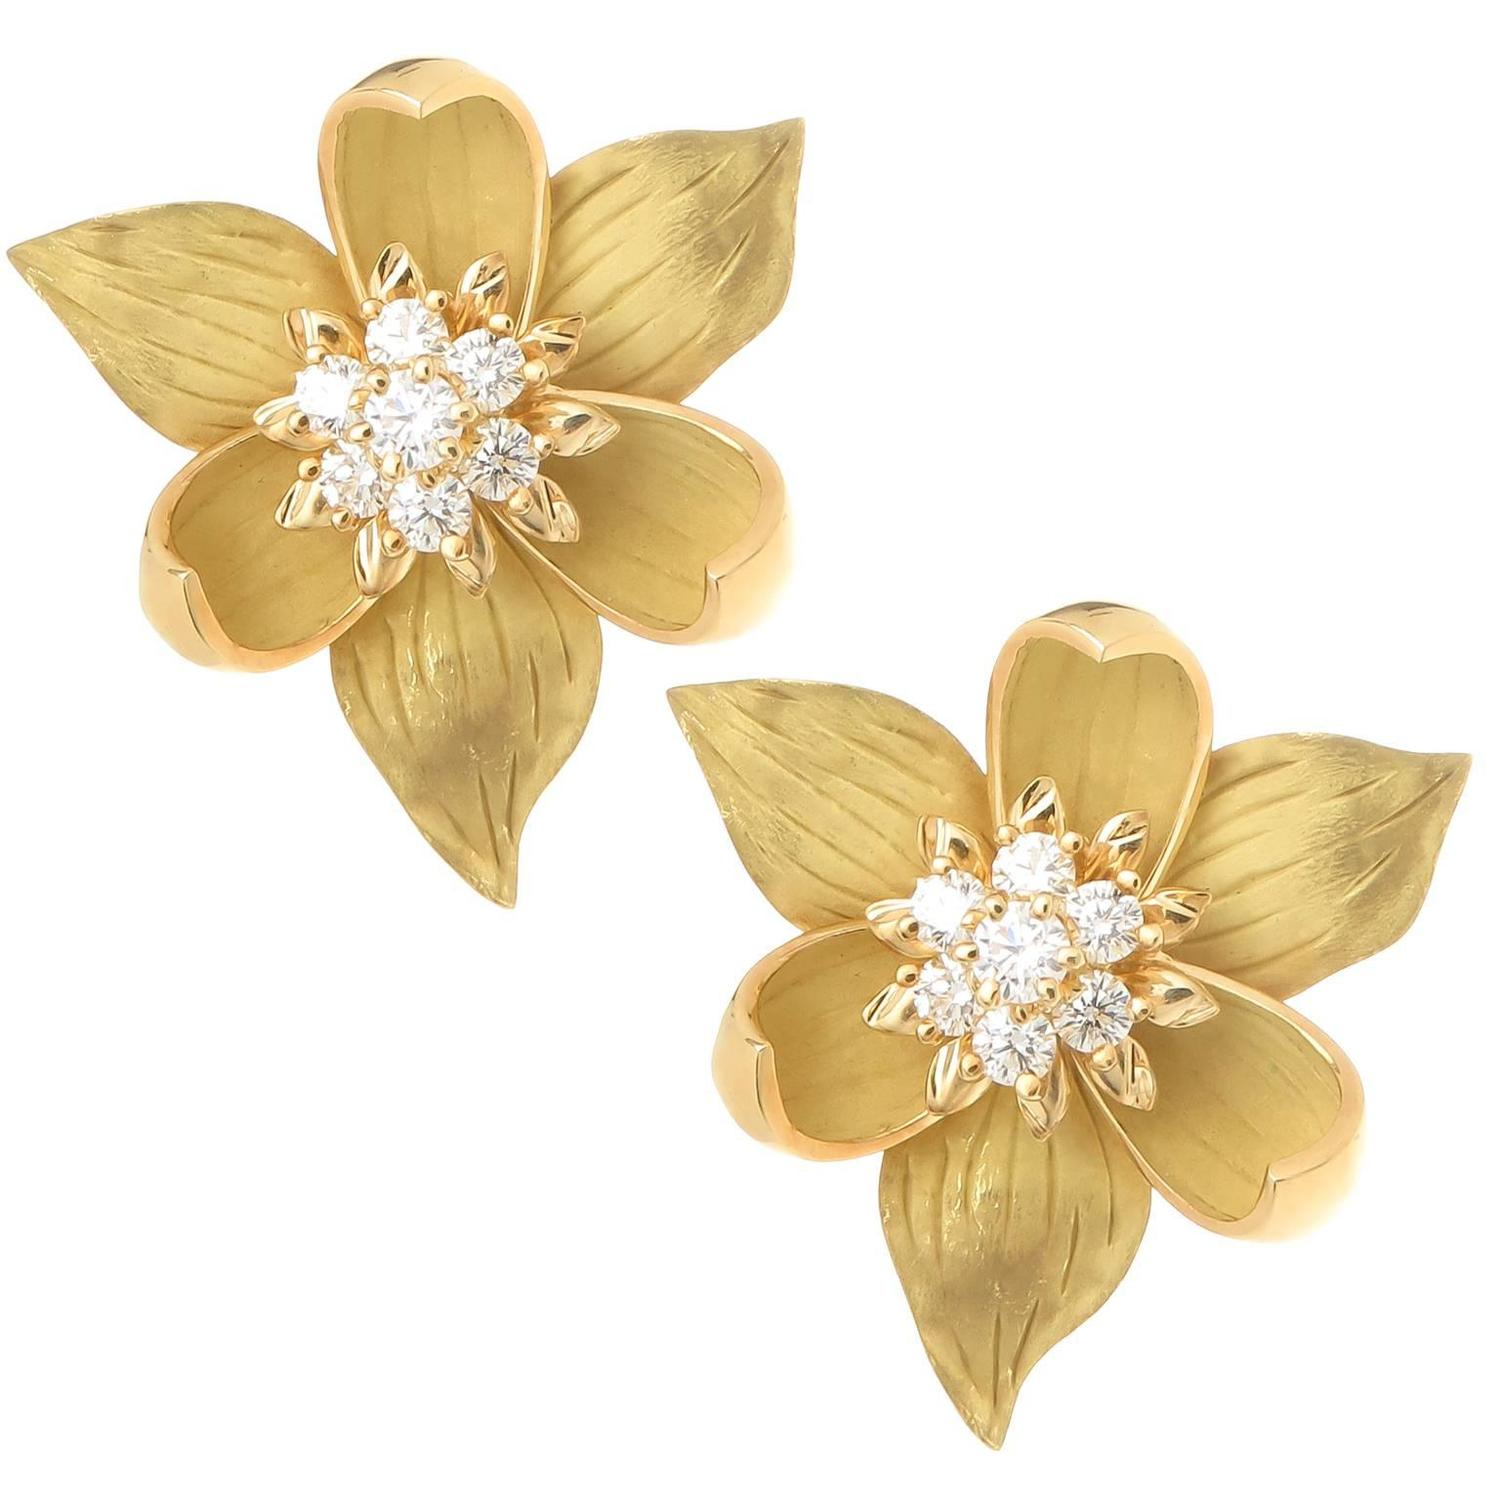 Tiffany and Co Diamond Gold Flower Earrings For Sale at 1stdibs